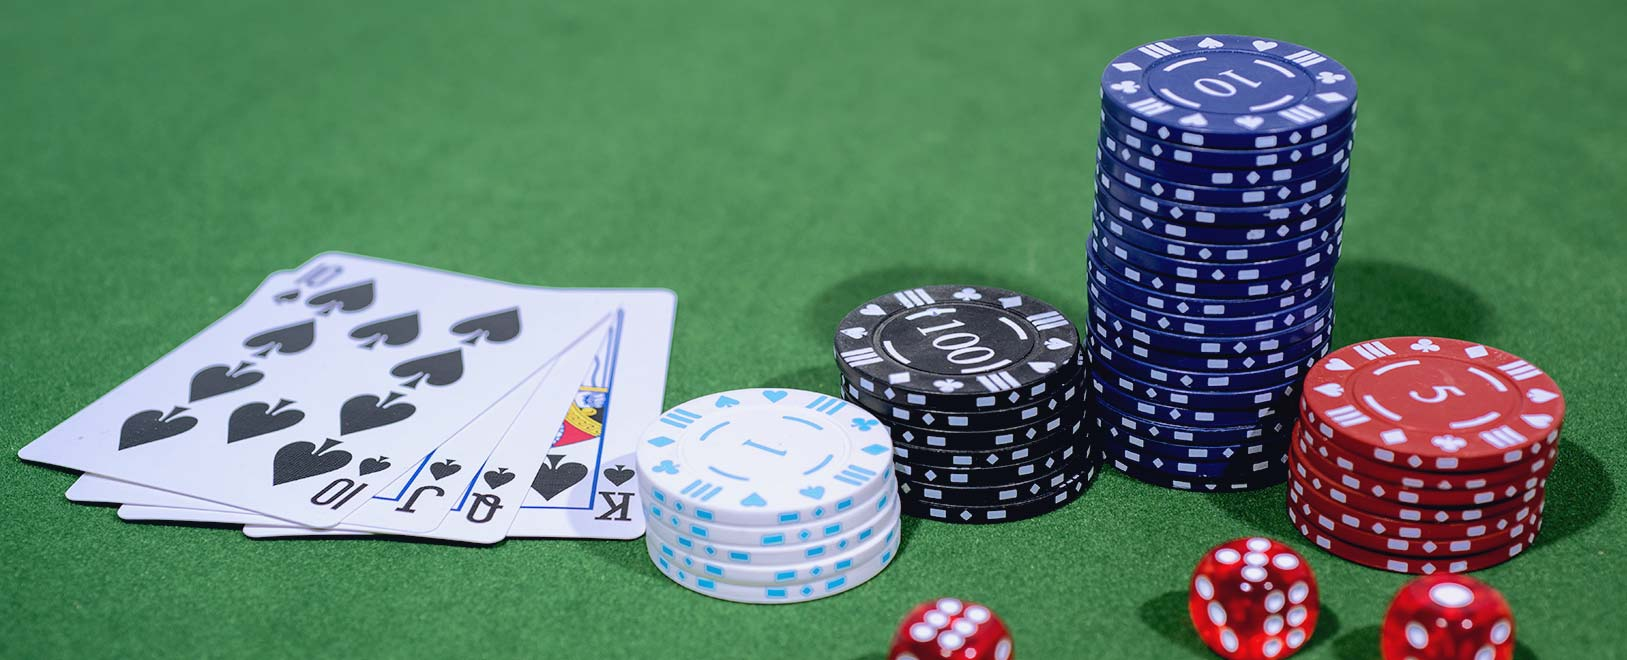 7 Online Poker Tips